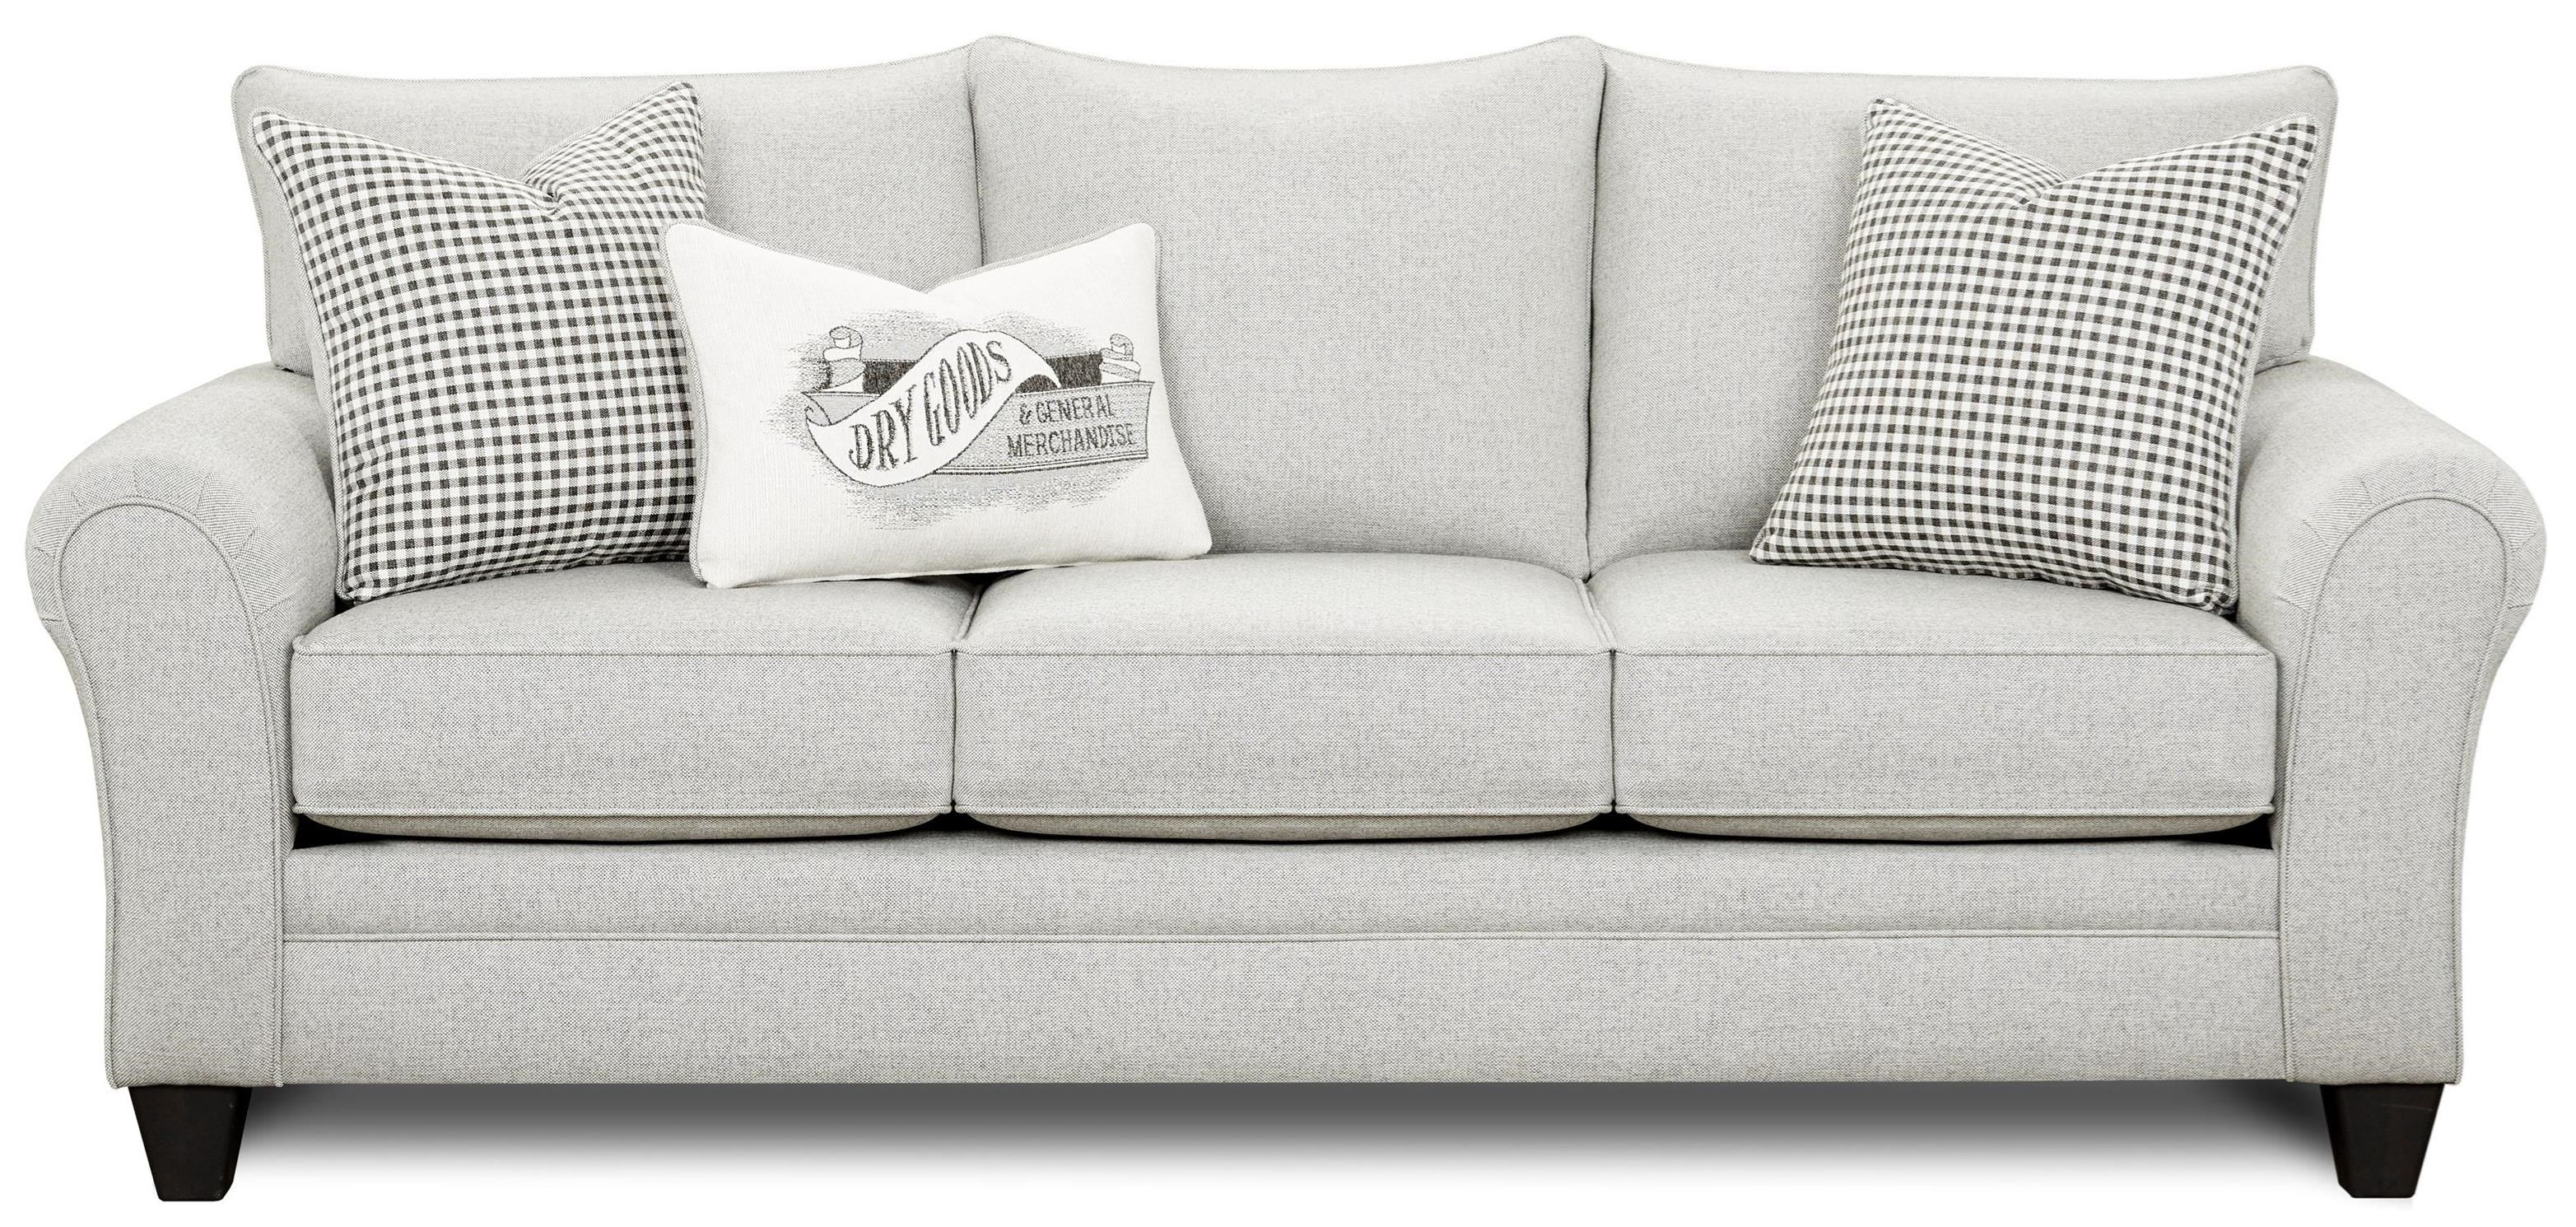 44-00 Sofa by Fusion Furniture at Prime Brothers Furniture